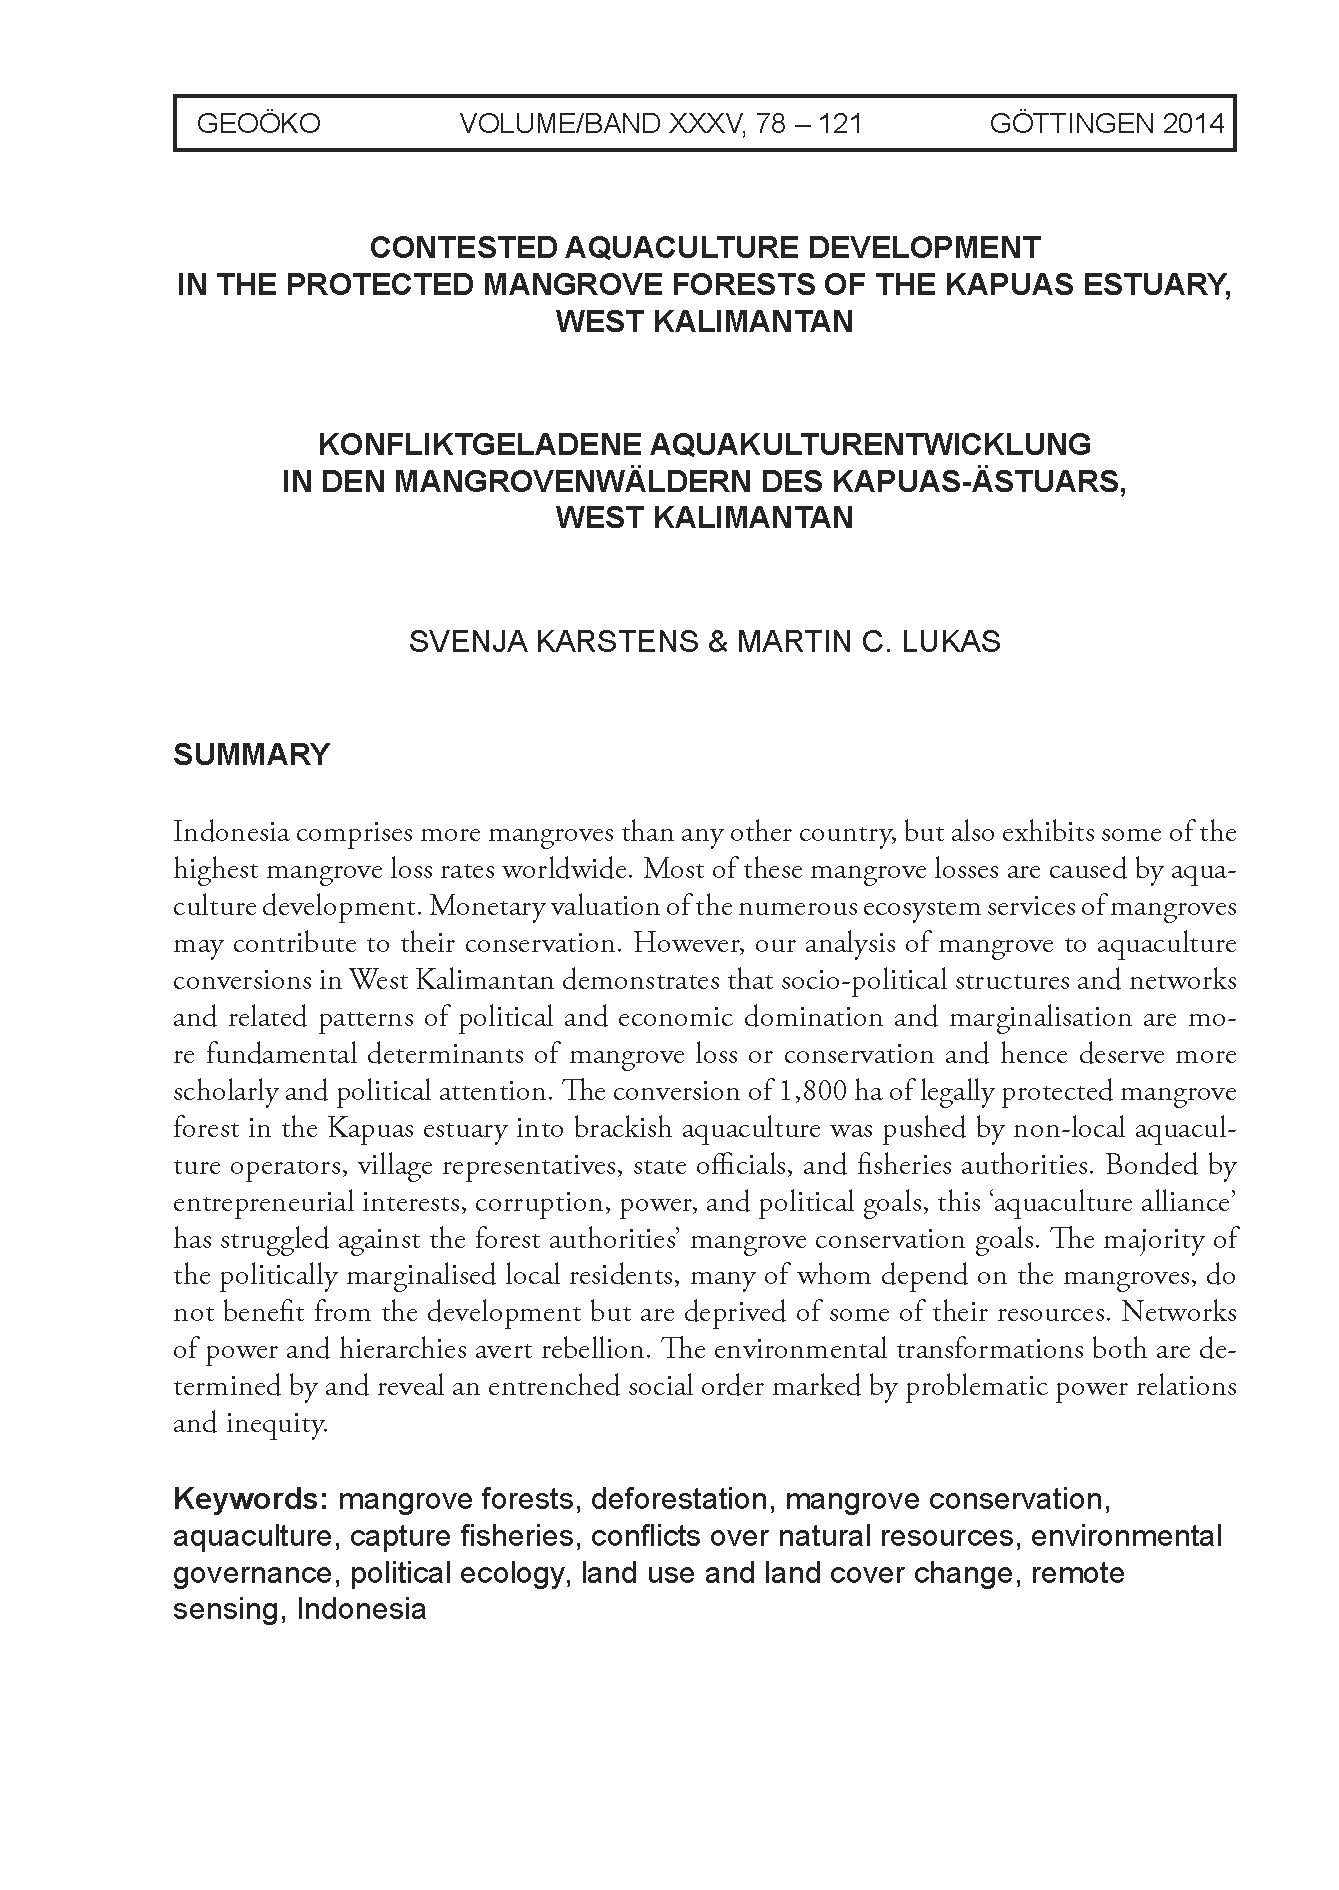 Contested aquaculture development in the protected mangrove forests of the Kapuas estuary, West Kalimantan